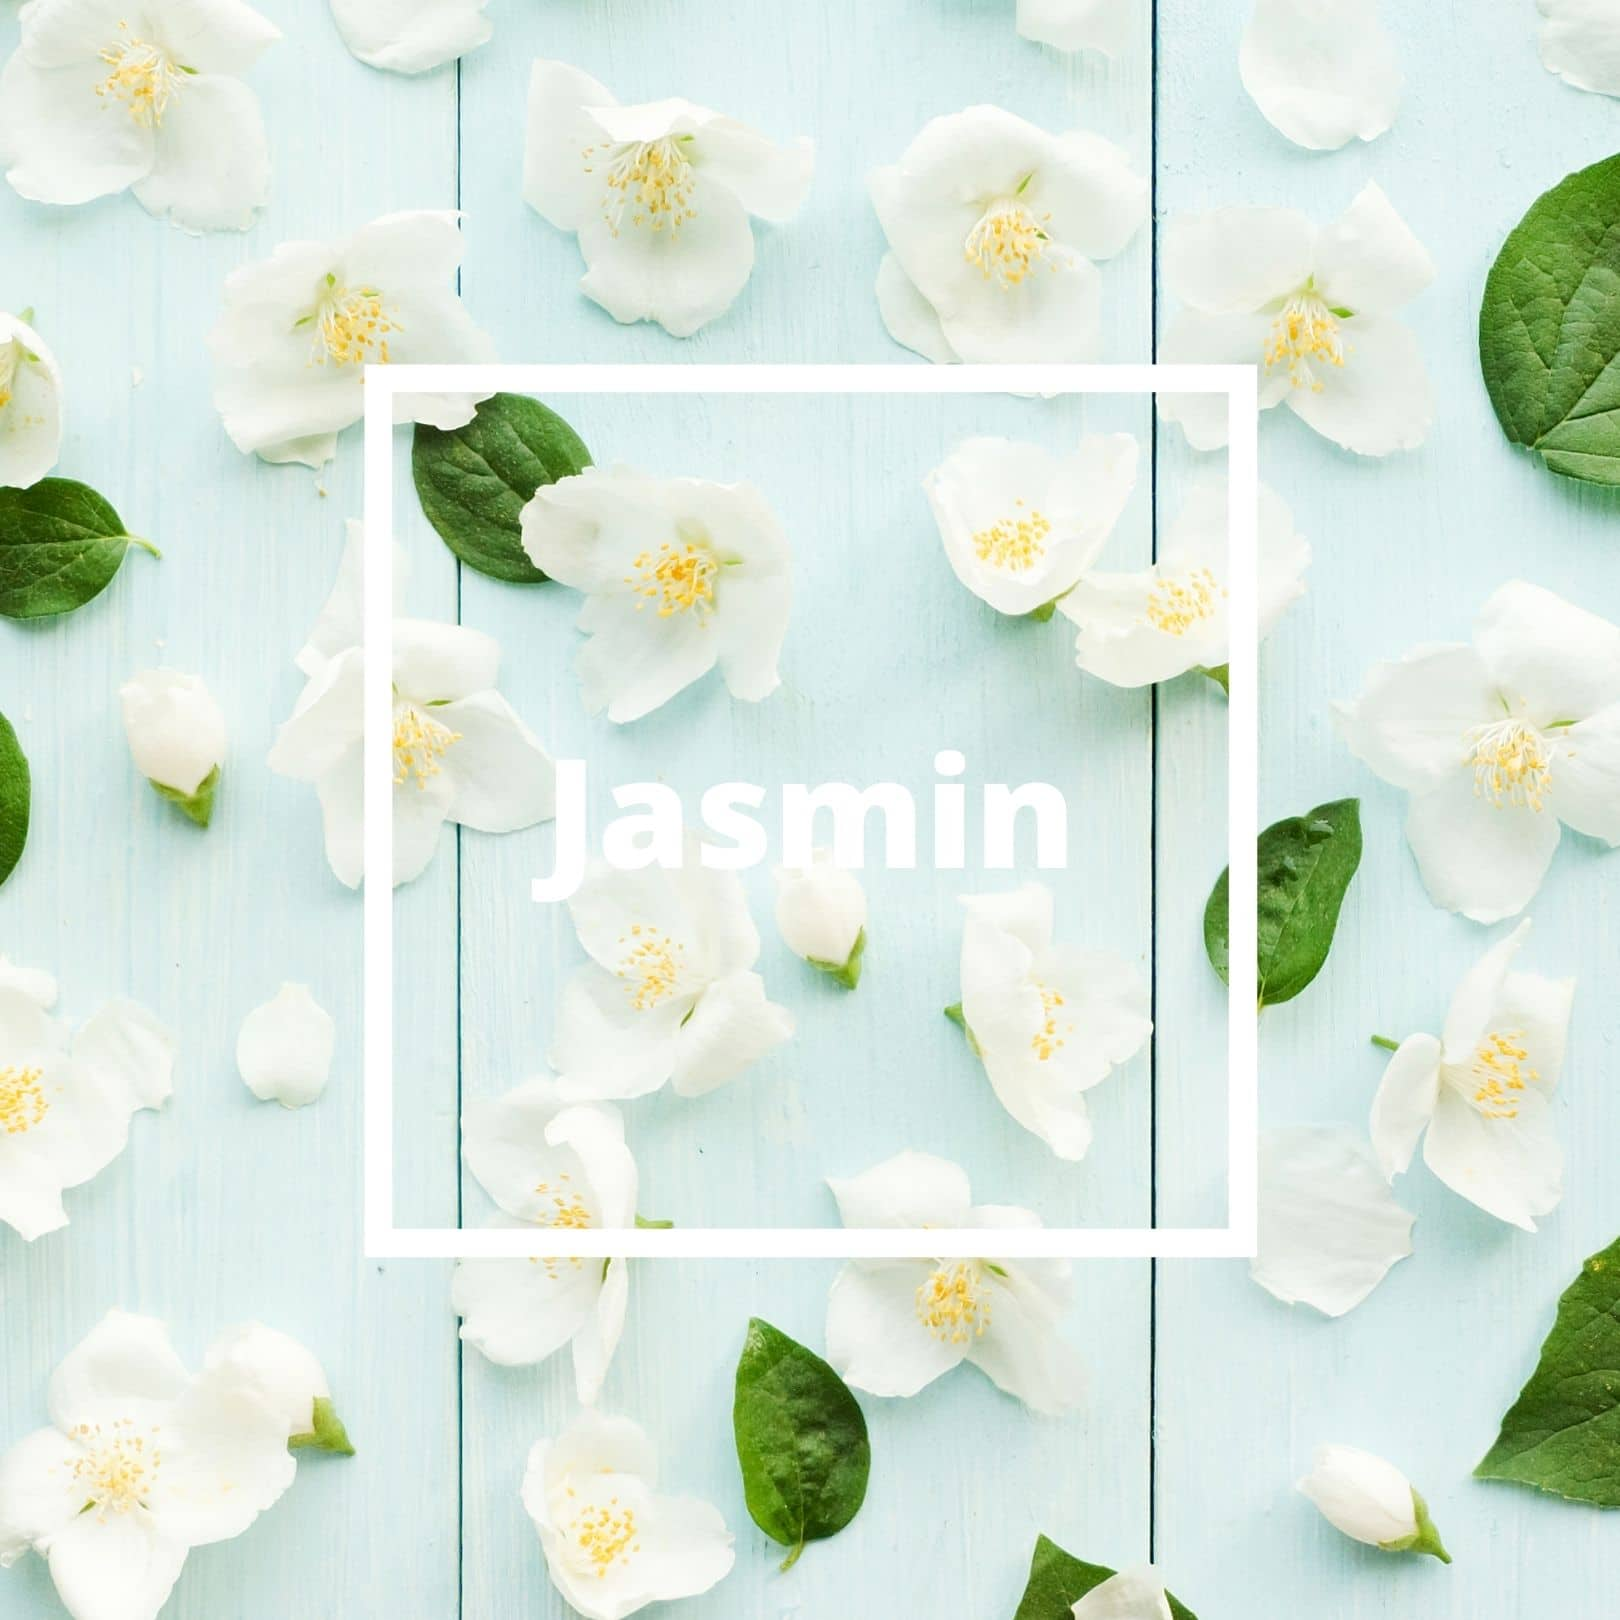 L'ATELIERO - Jasmin - The Queen